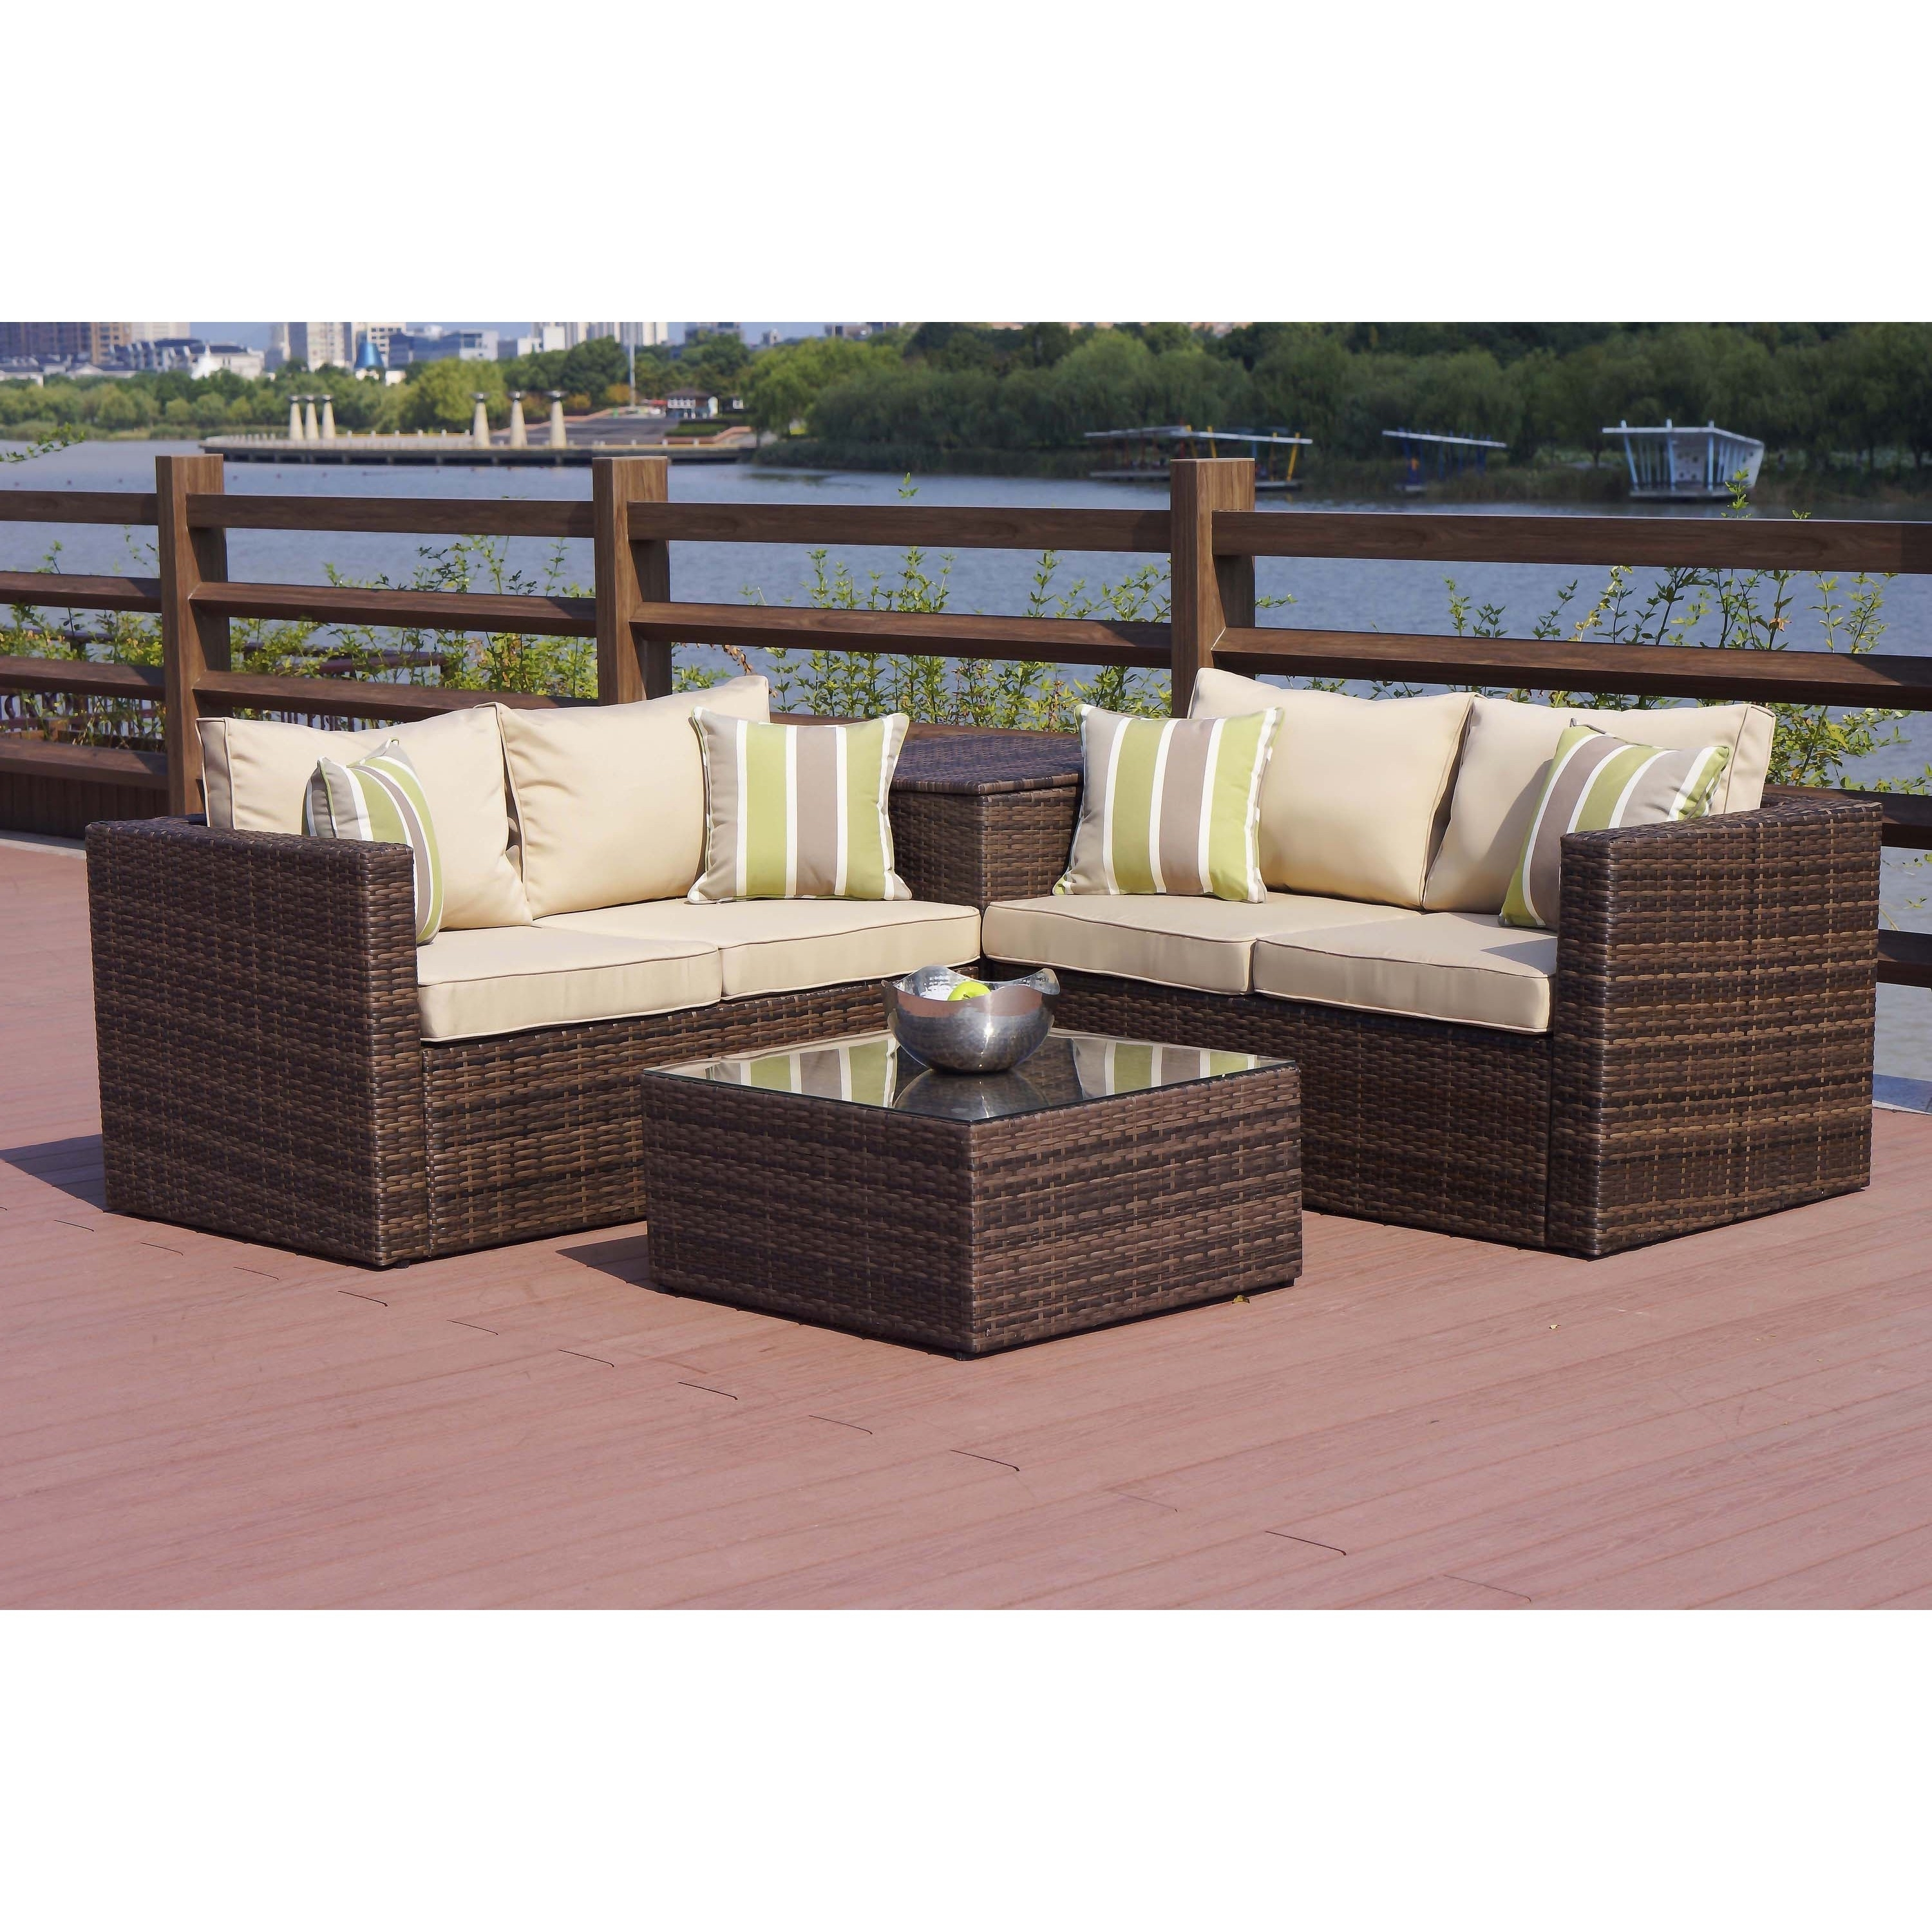 Patio Conversation Set With Storage Pertaining To Current Shop Zoe Outdoor 4 Piece Conversation Set With Storage Box – On Sale (View 7 of 15)